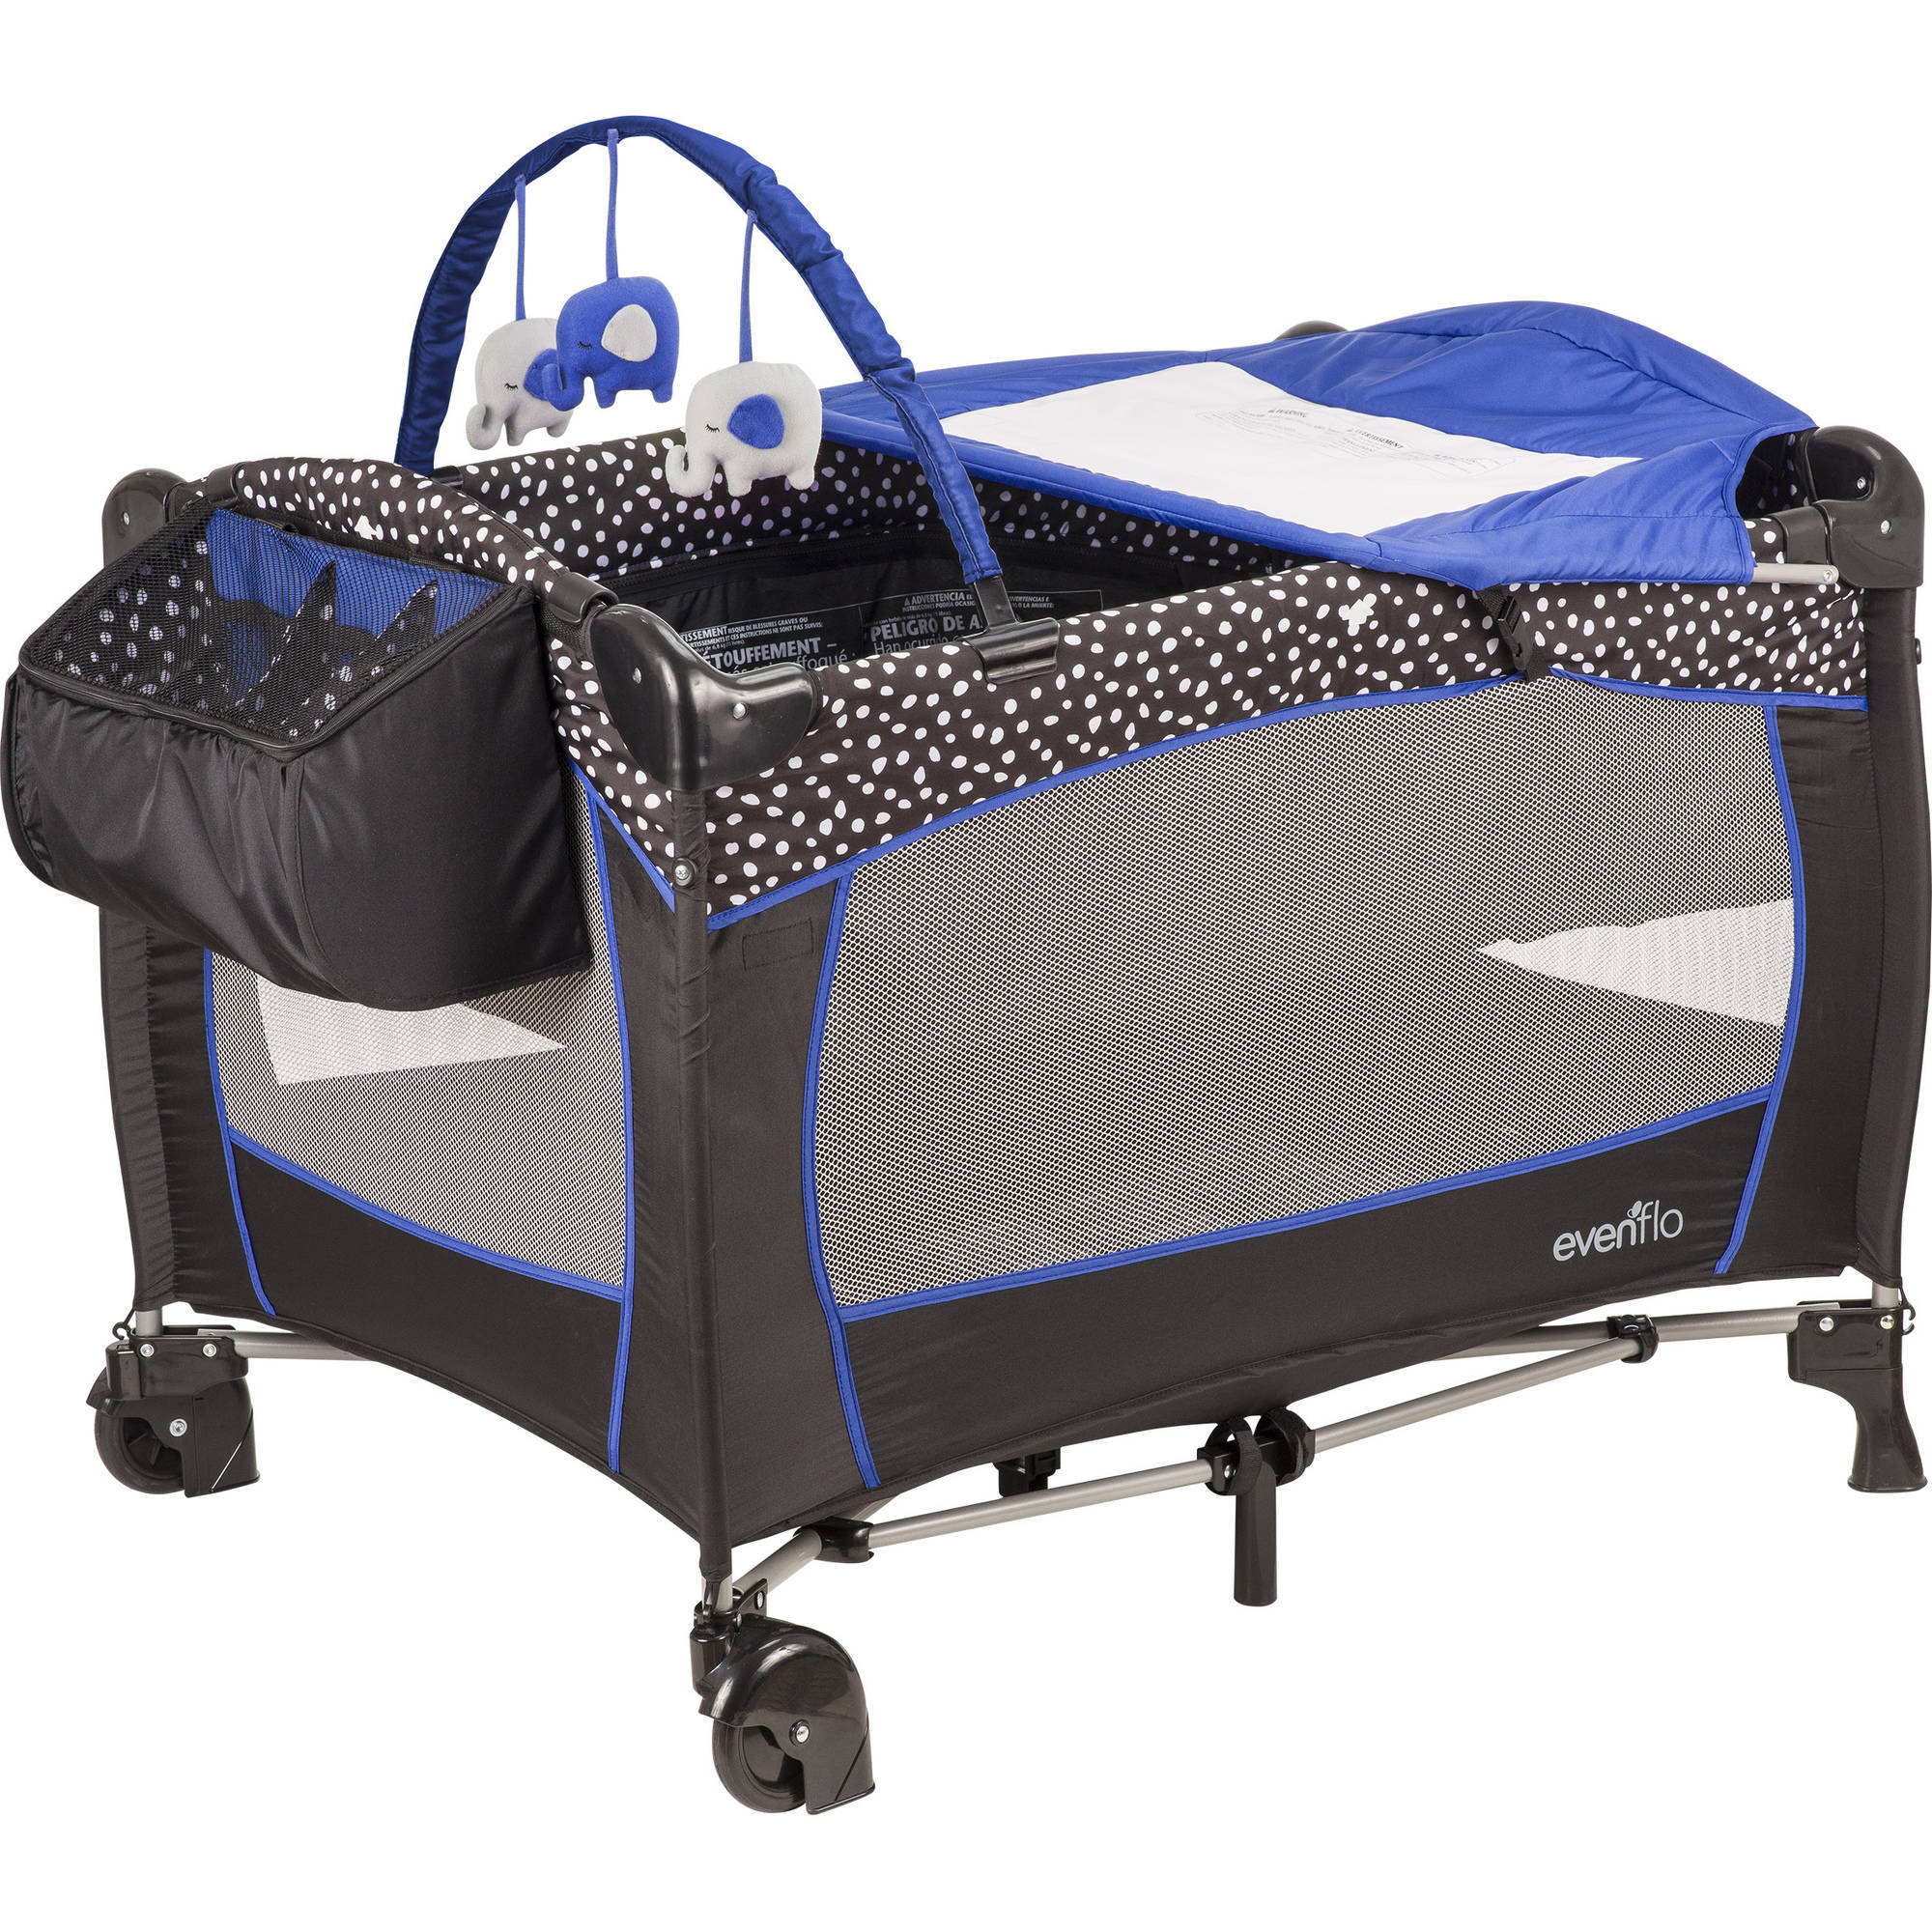 Evenflo Portable Babysuite Deluxe Playard, Hayden Dot